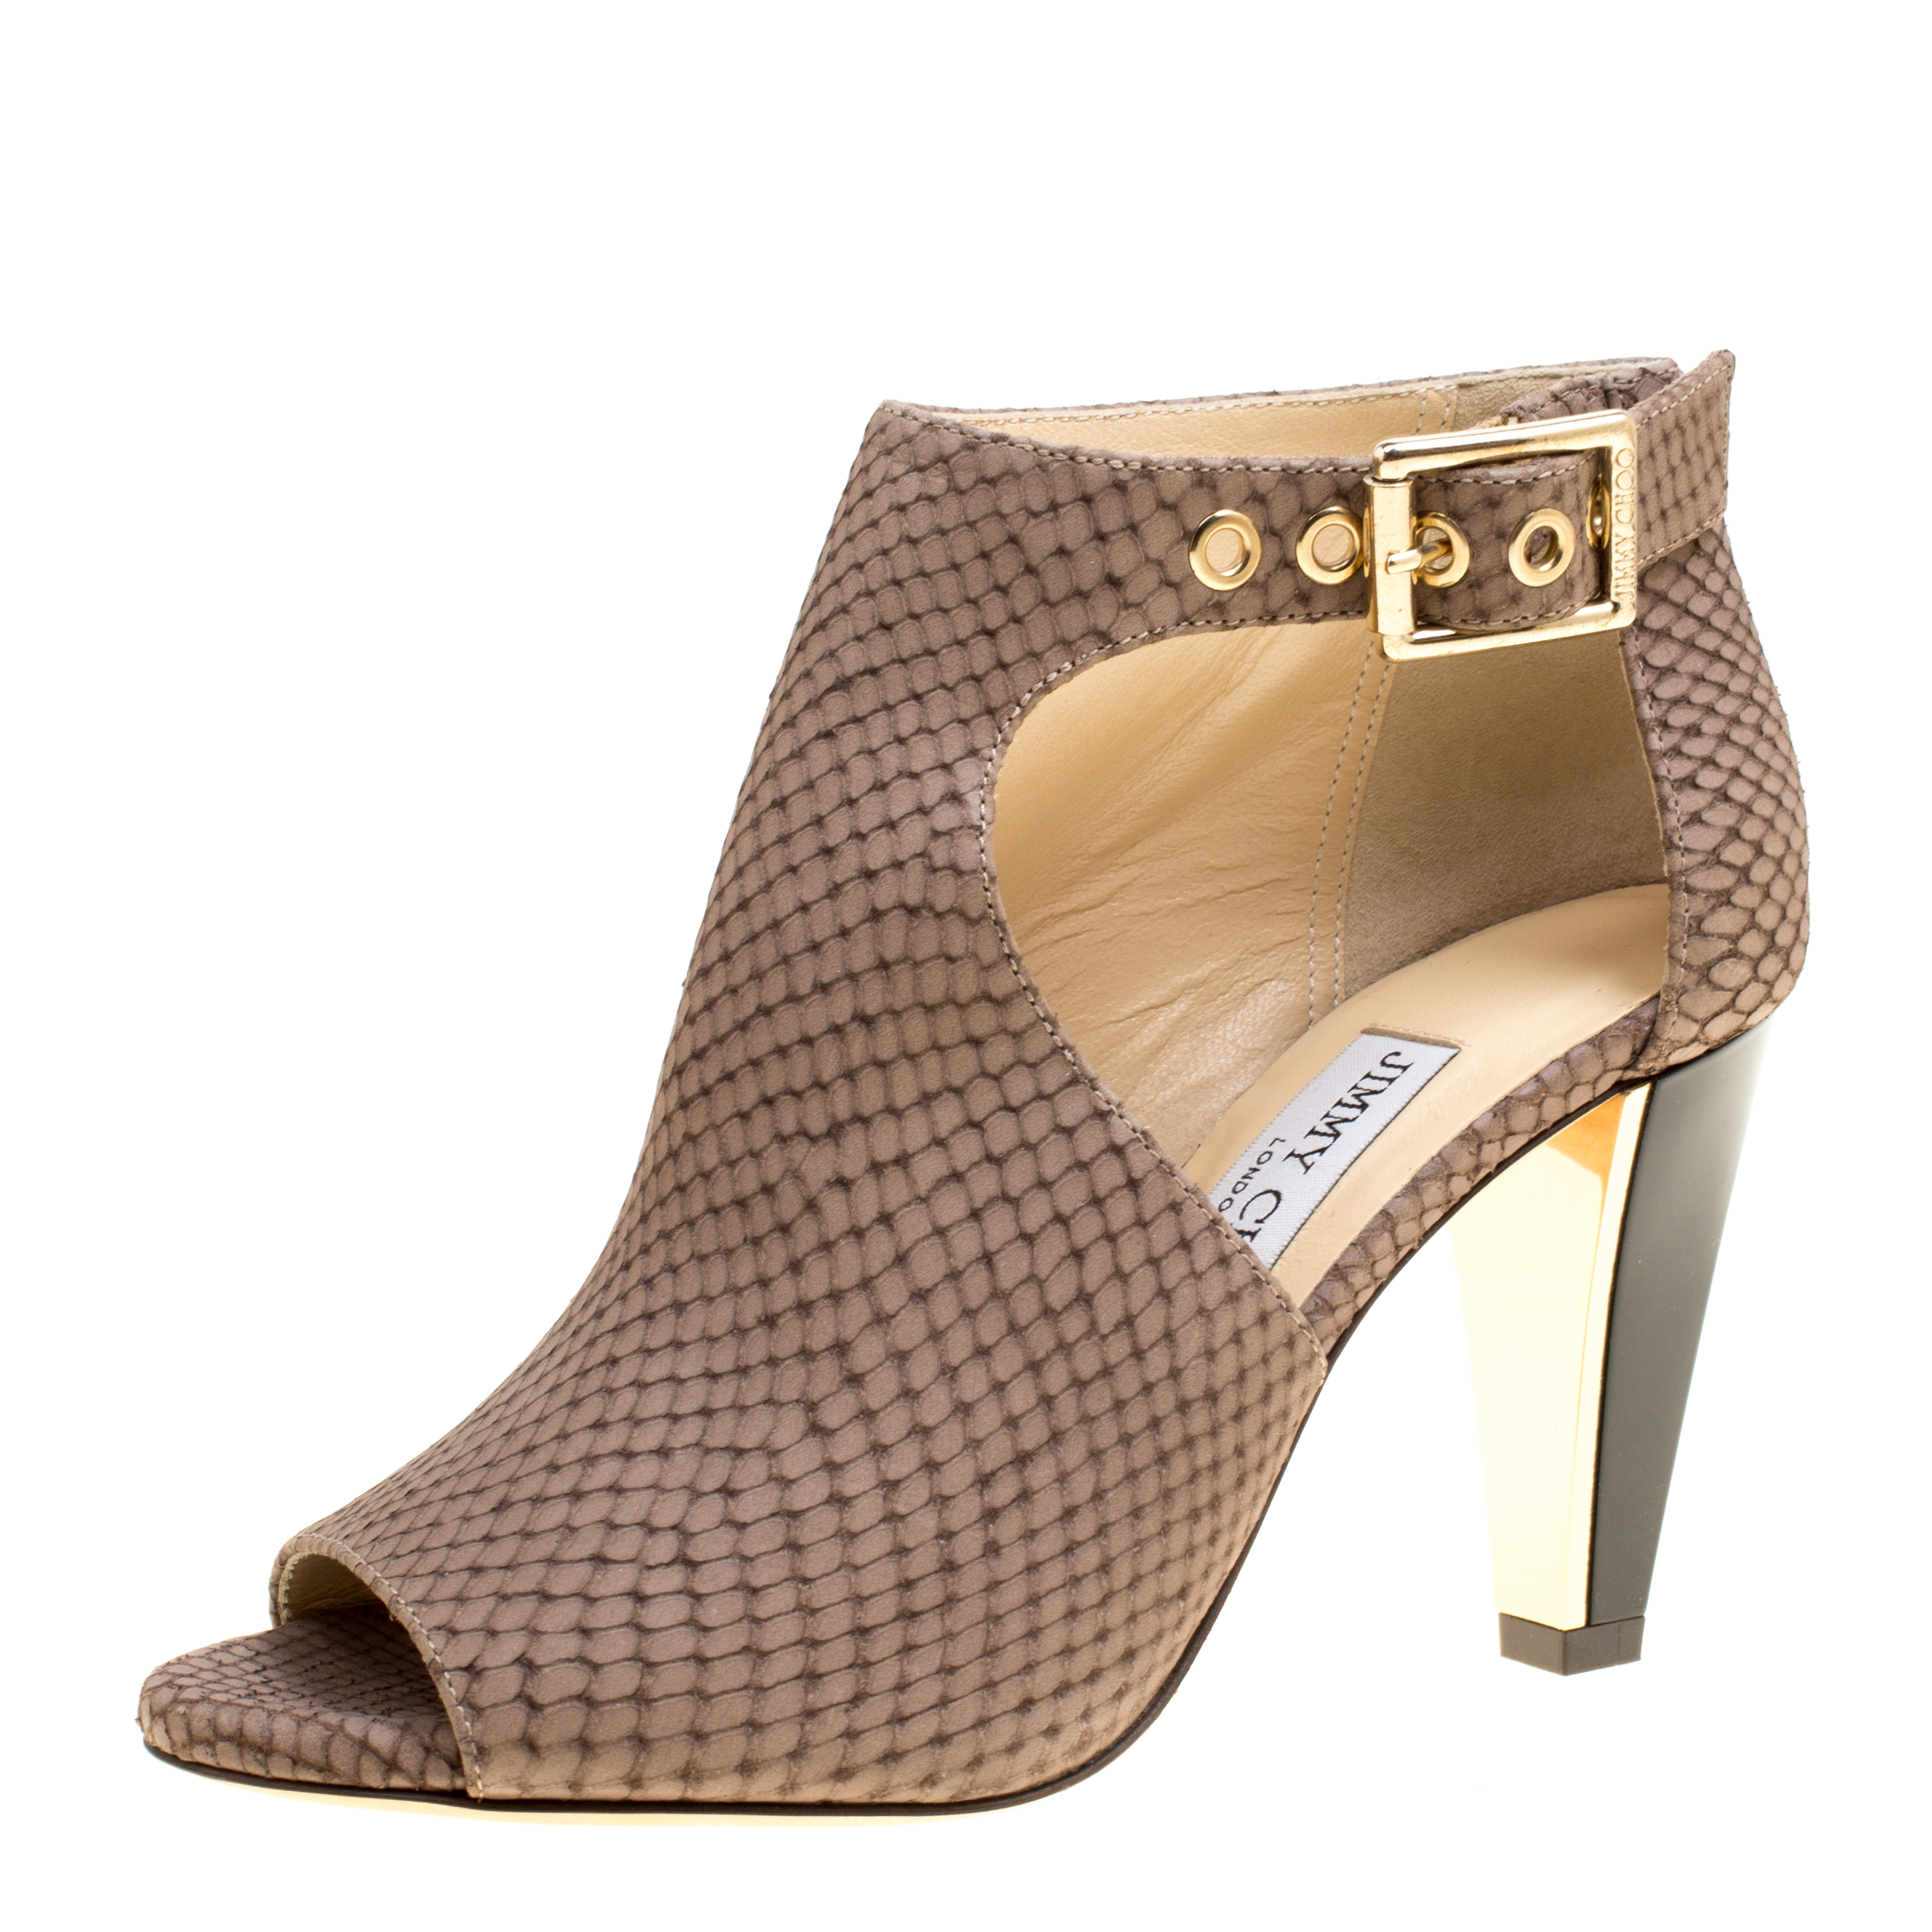 8c2e374d4ea4 Buy Jimmy Choo Light Brown Snake Embossed Leather Peep Toe Booties Size  35.5 161800 at best price